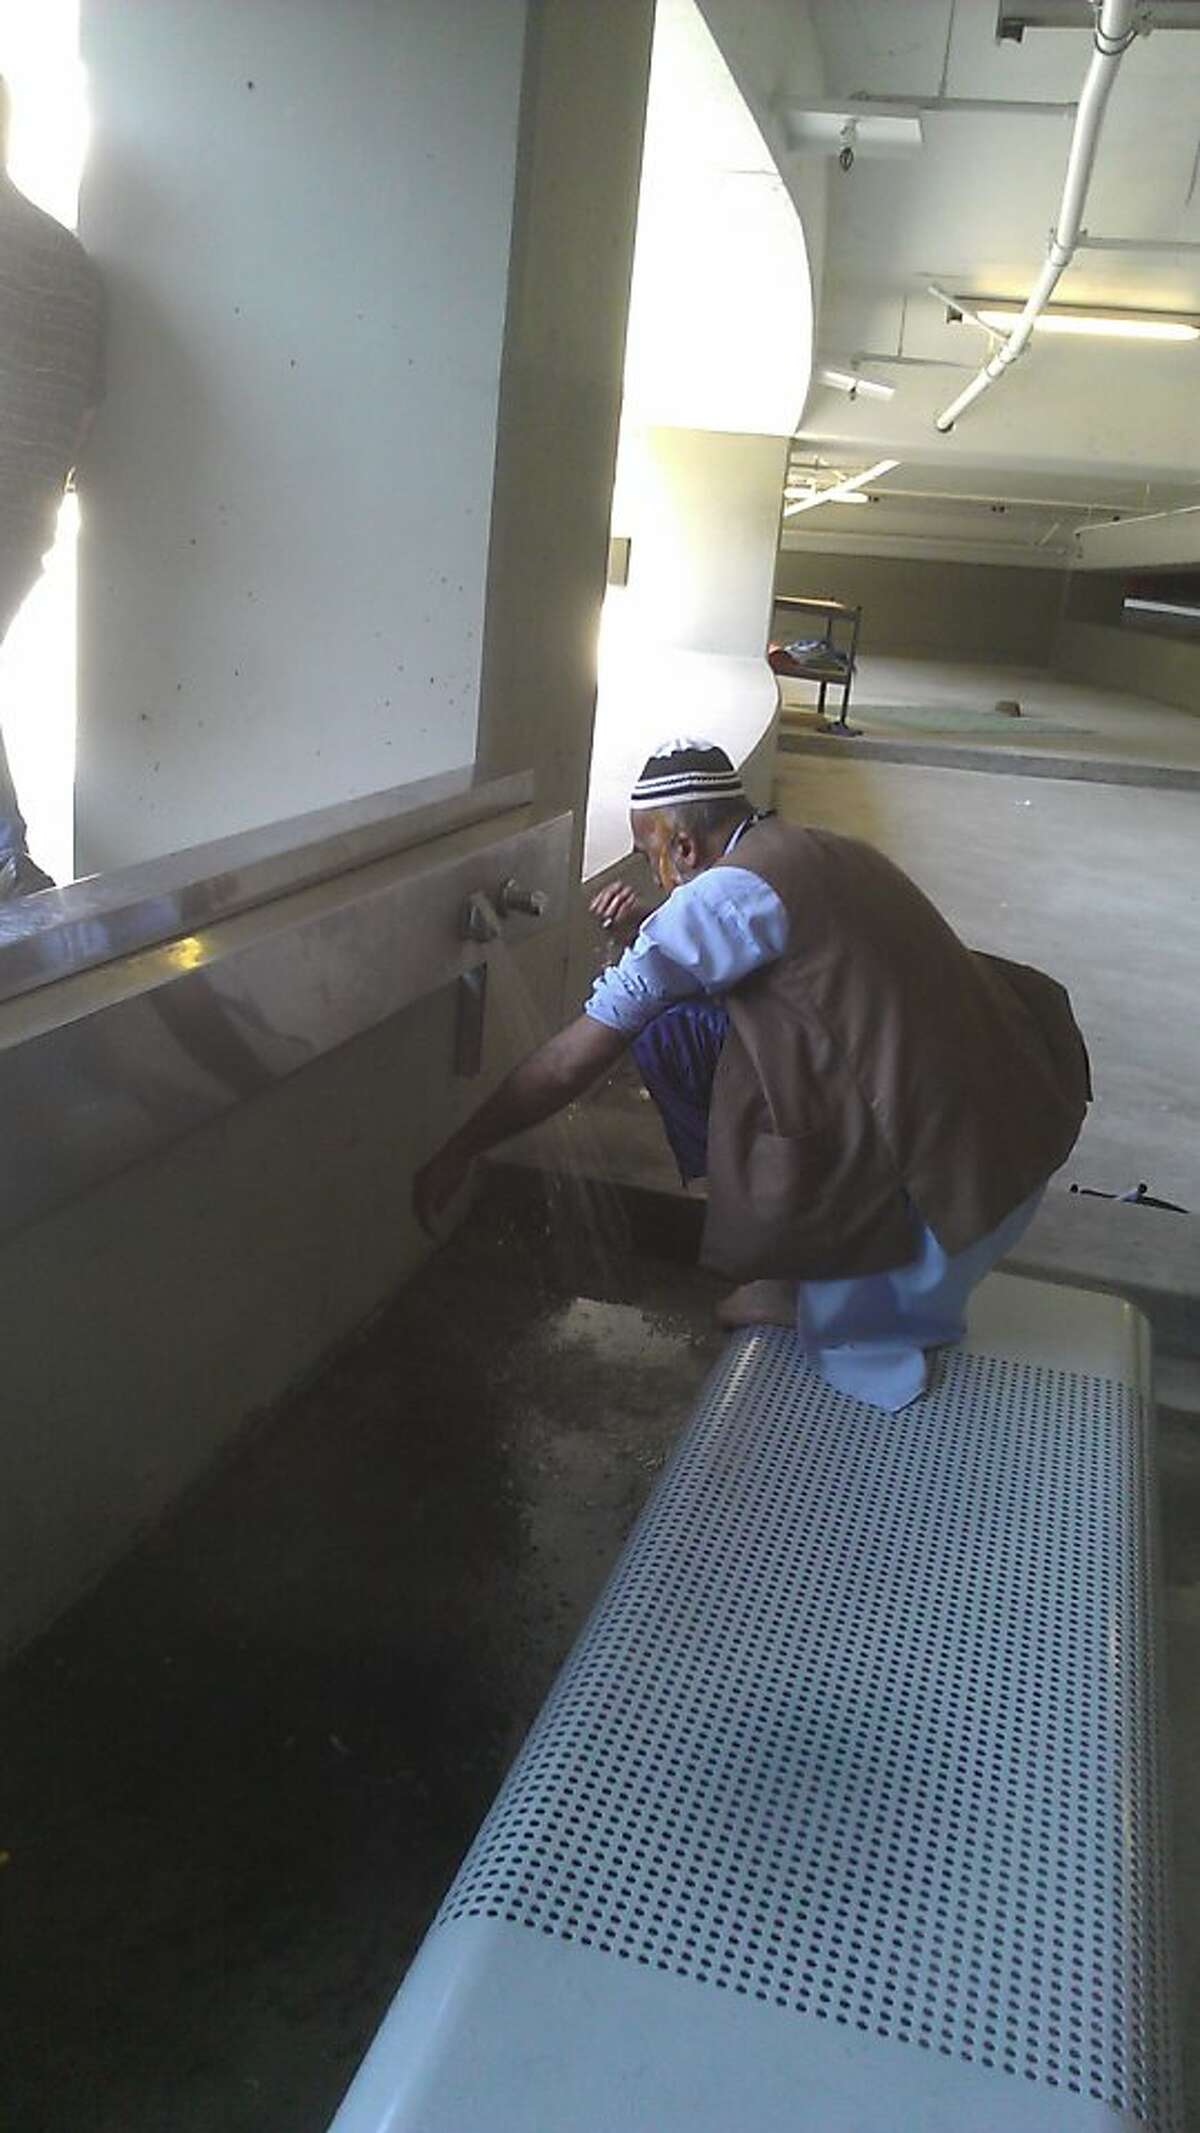 Royal cab driver Hasan Khan, 52, washes his hands and feet inside the parking garage at San Francisco International Airport before his his daily prayers. Khan's petition drive prompted the airport to give the Muslim drivers their own cleansing station.